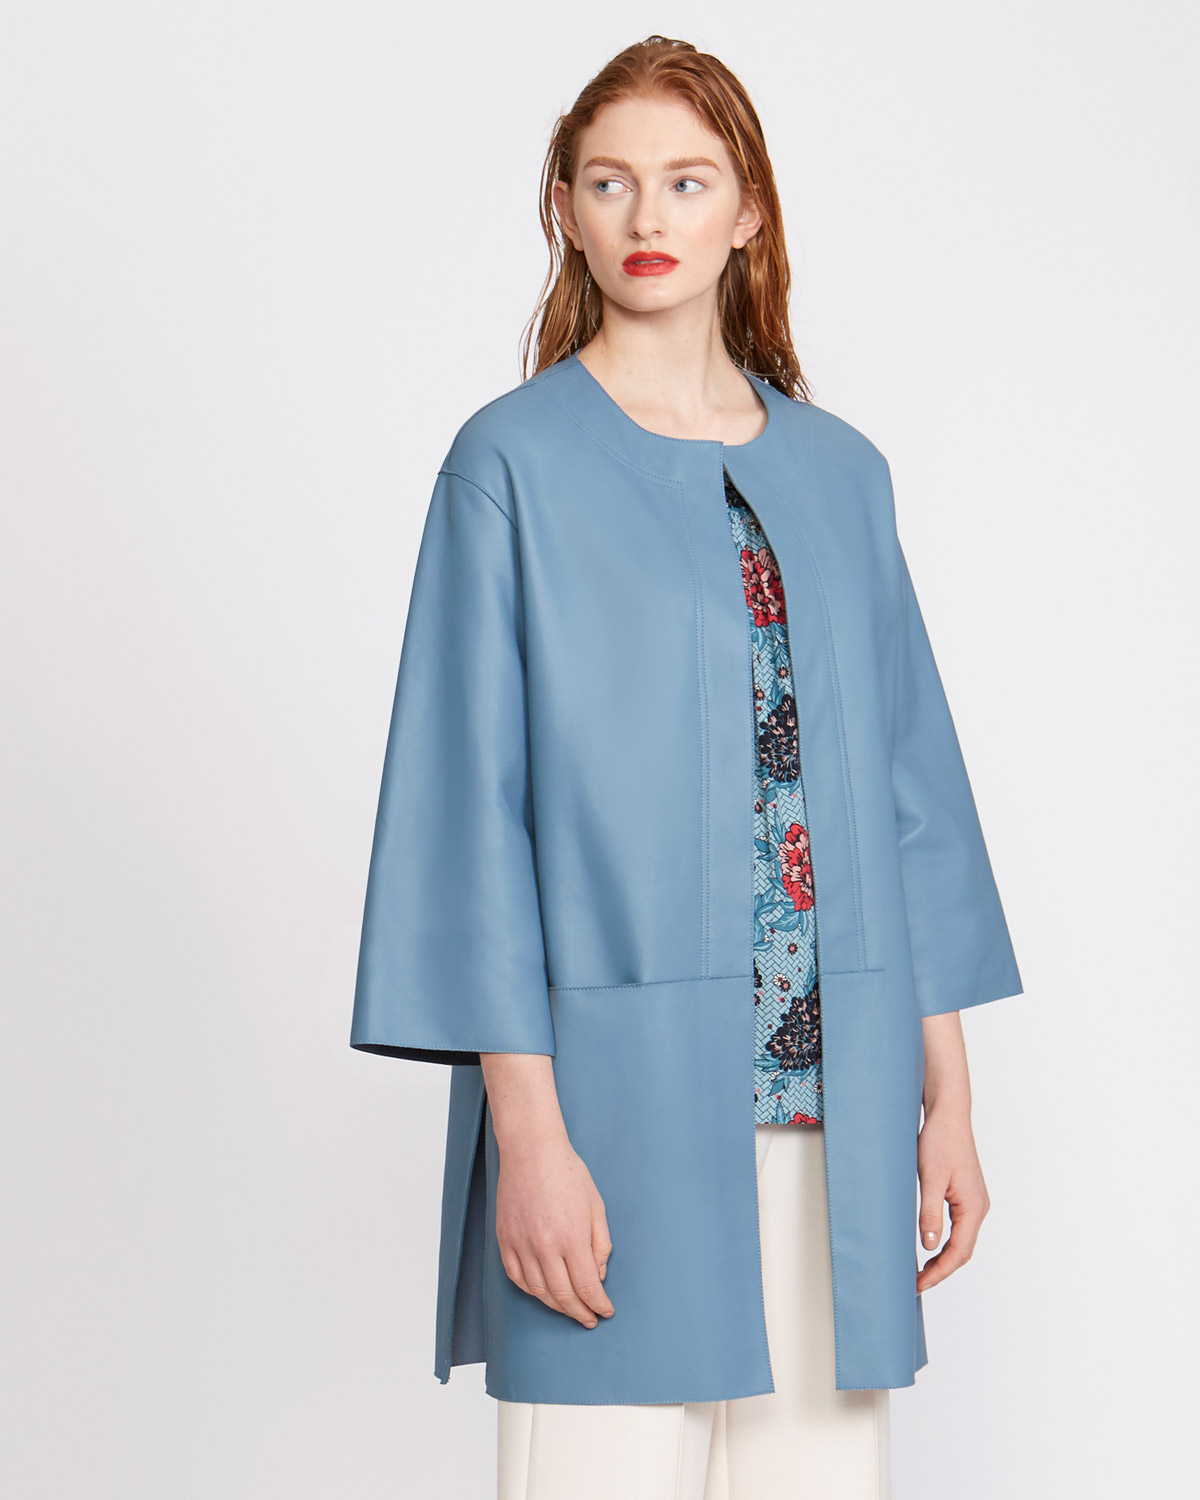 b16e3ca8 Carolyn Donnelly The Edit Leather Coat With Side Slits